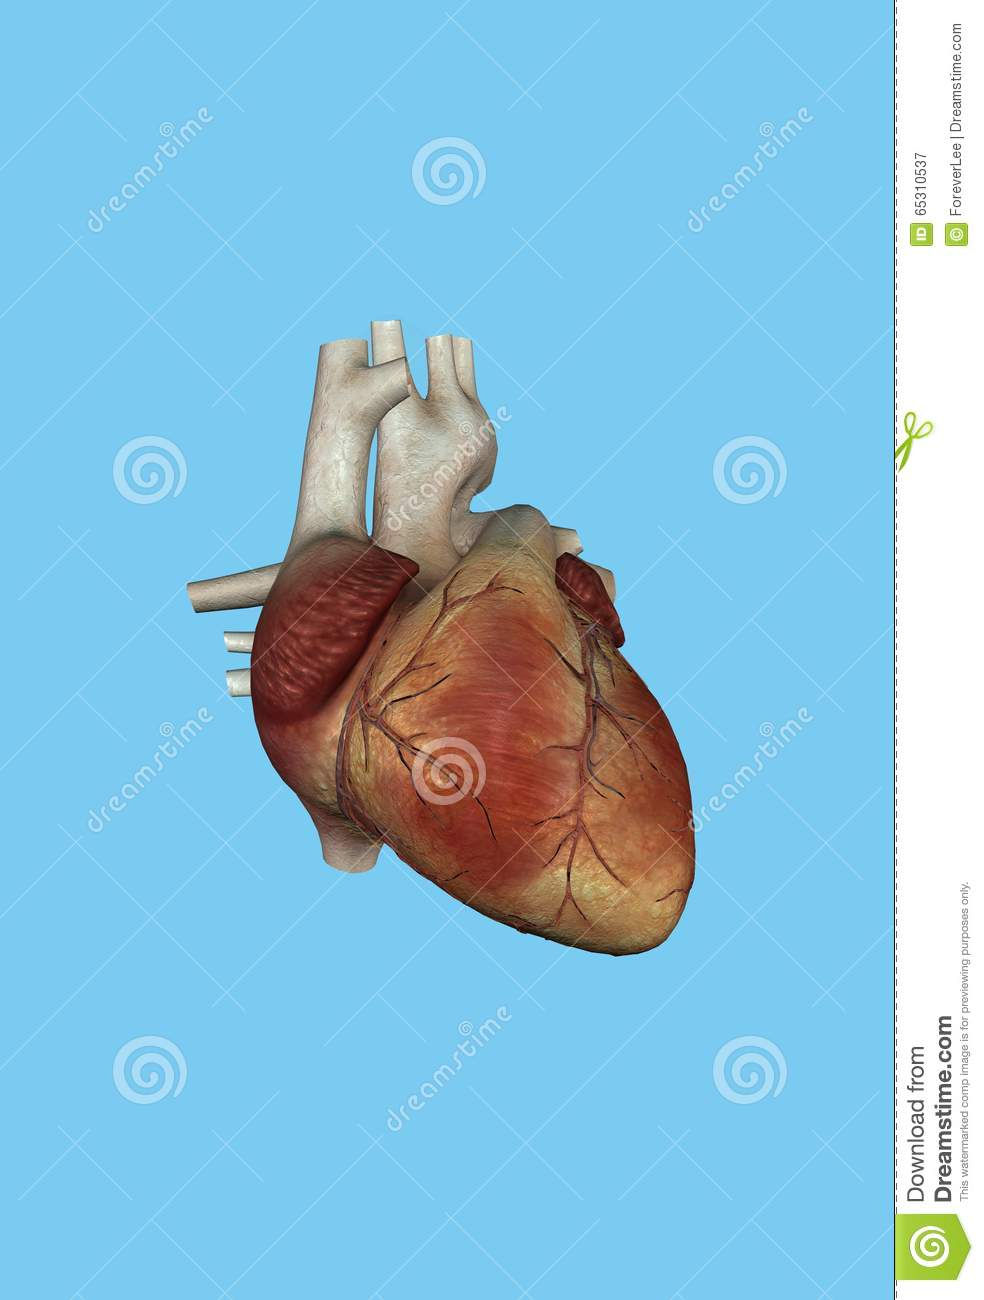 Human Heart Stock Illustration Illustration Of Biology 65310537